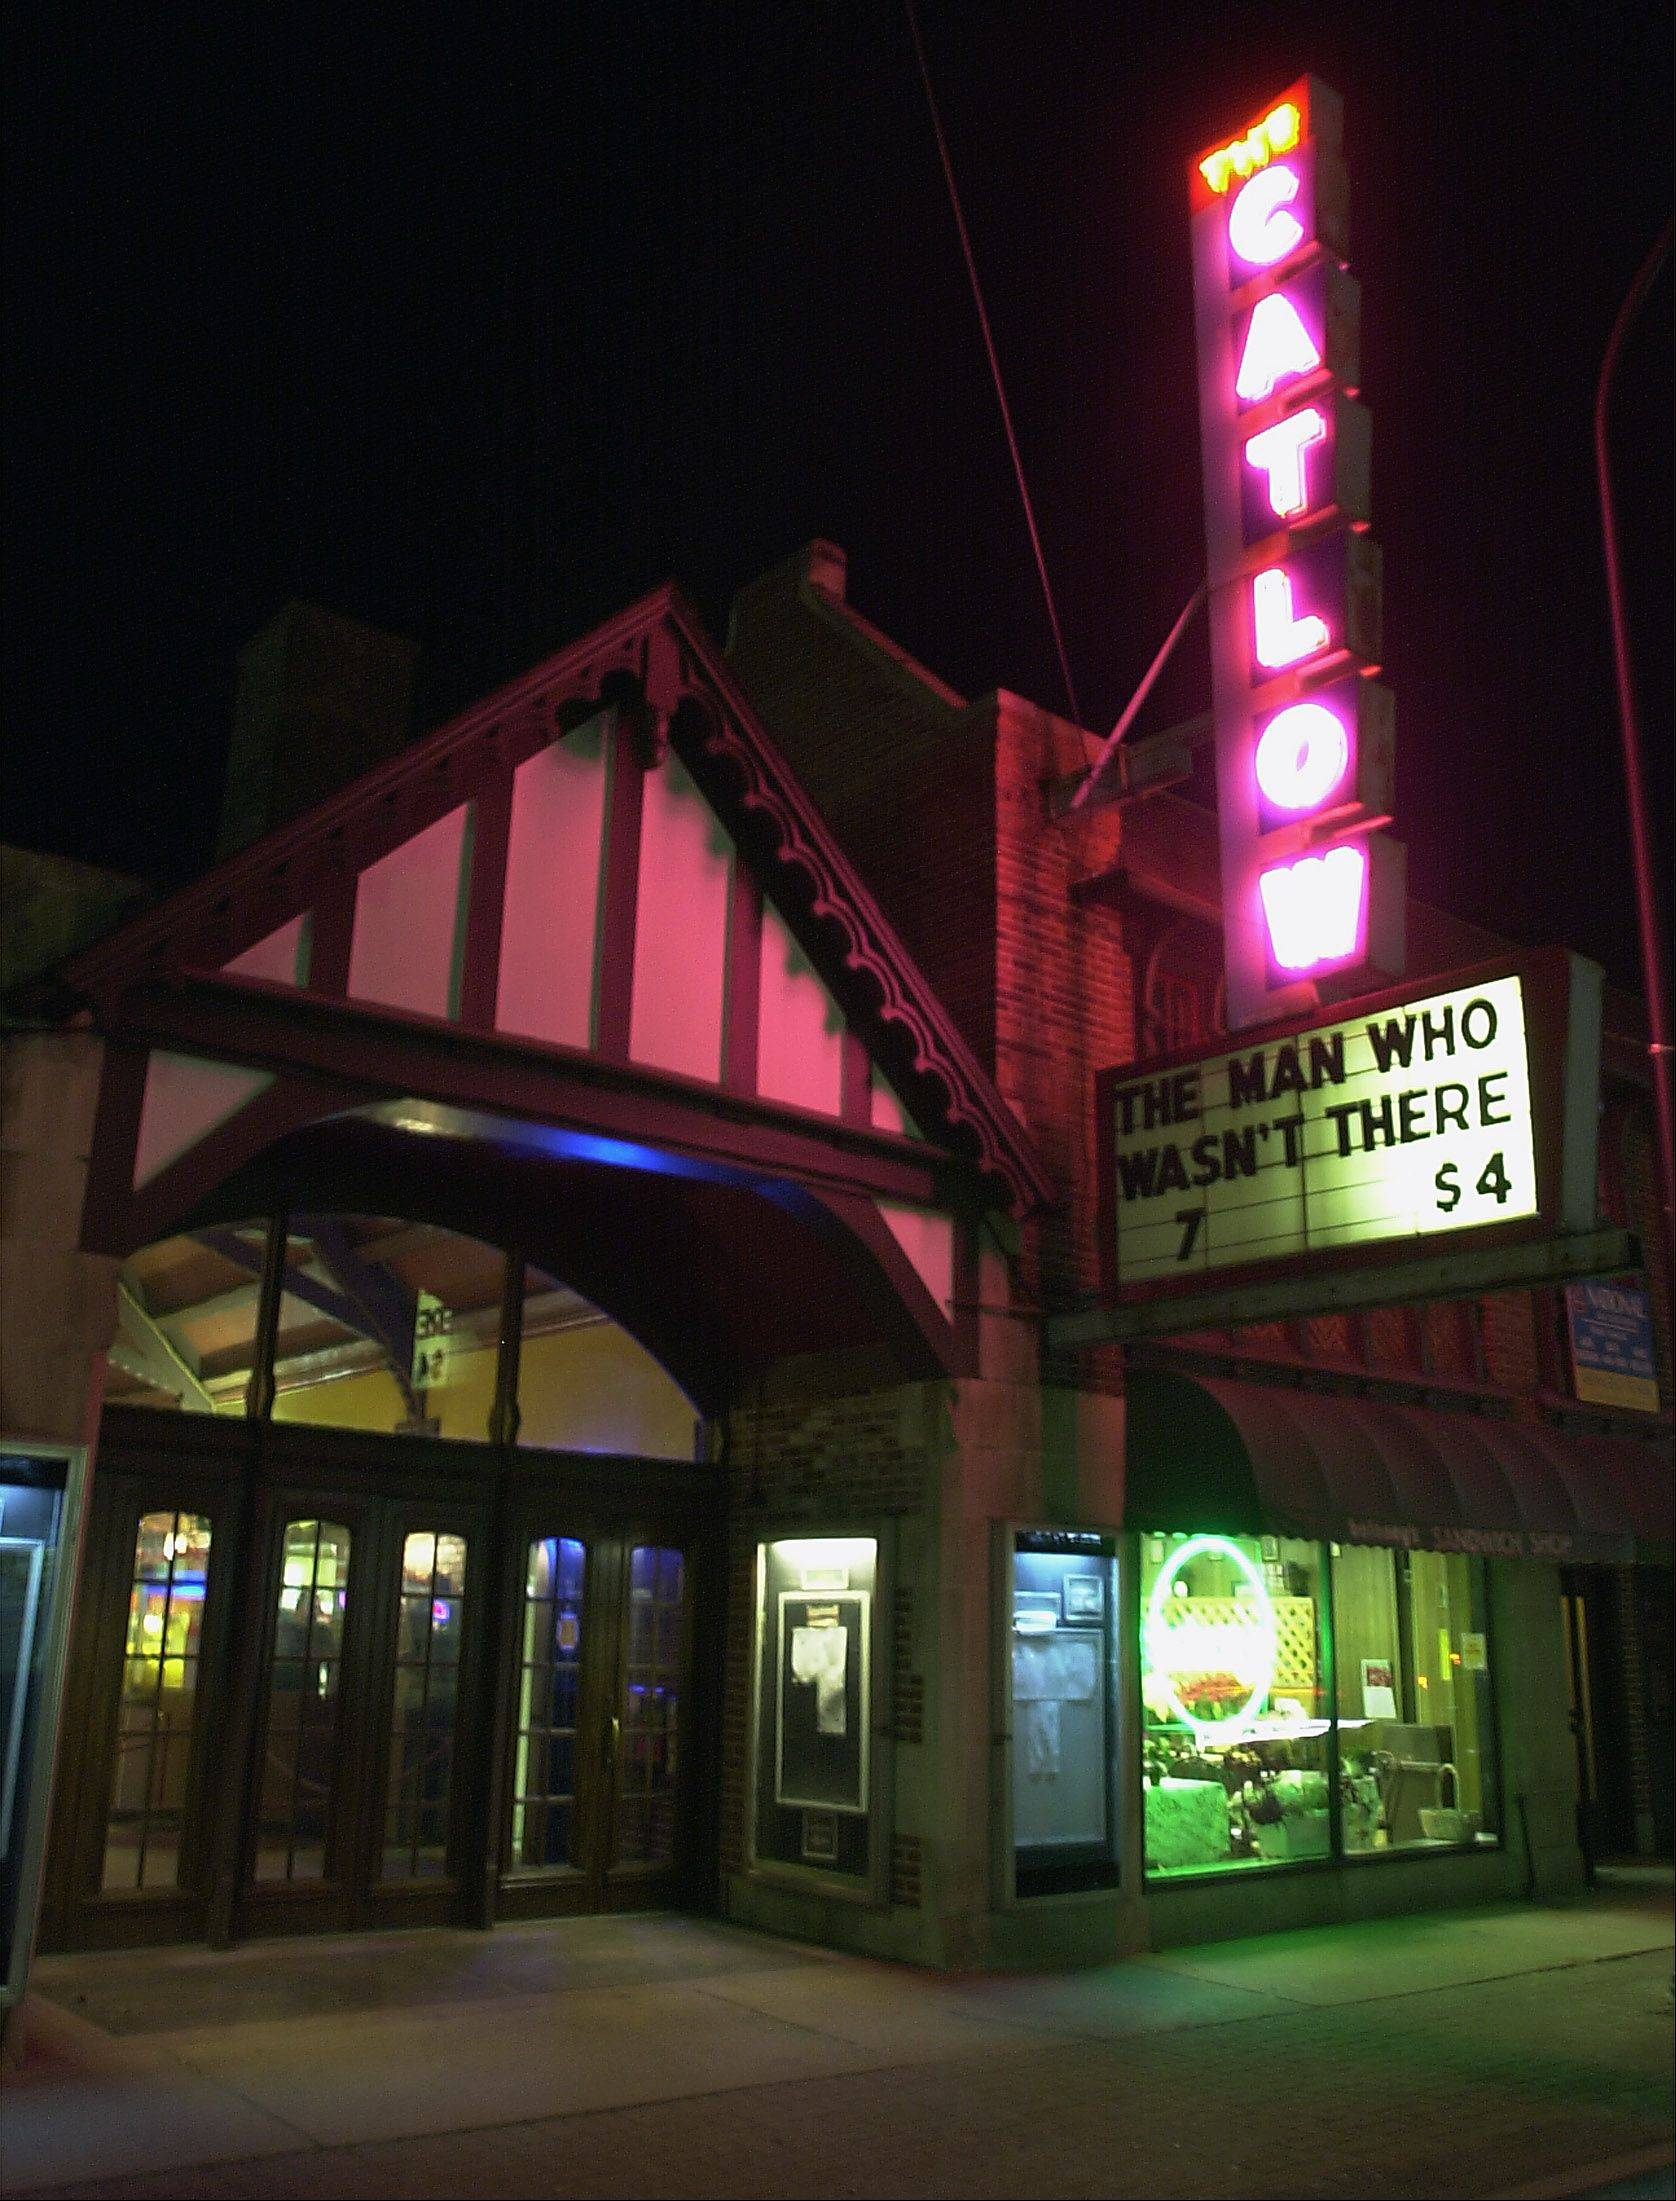 Thanks to a successful online fundraiser to buy a new digital projector, the 85-year-old Catlow theater in downtown Barrington is now looking forward to a future beyond 2013.